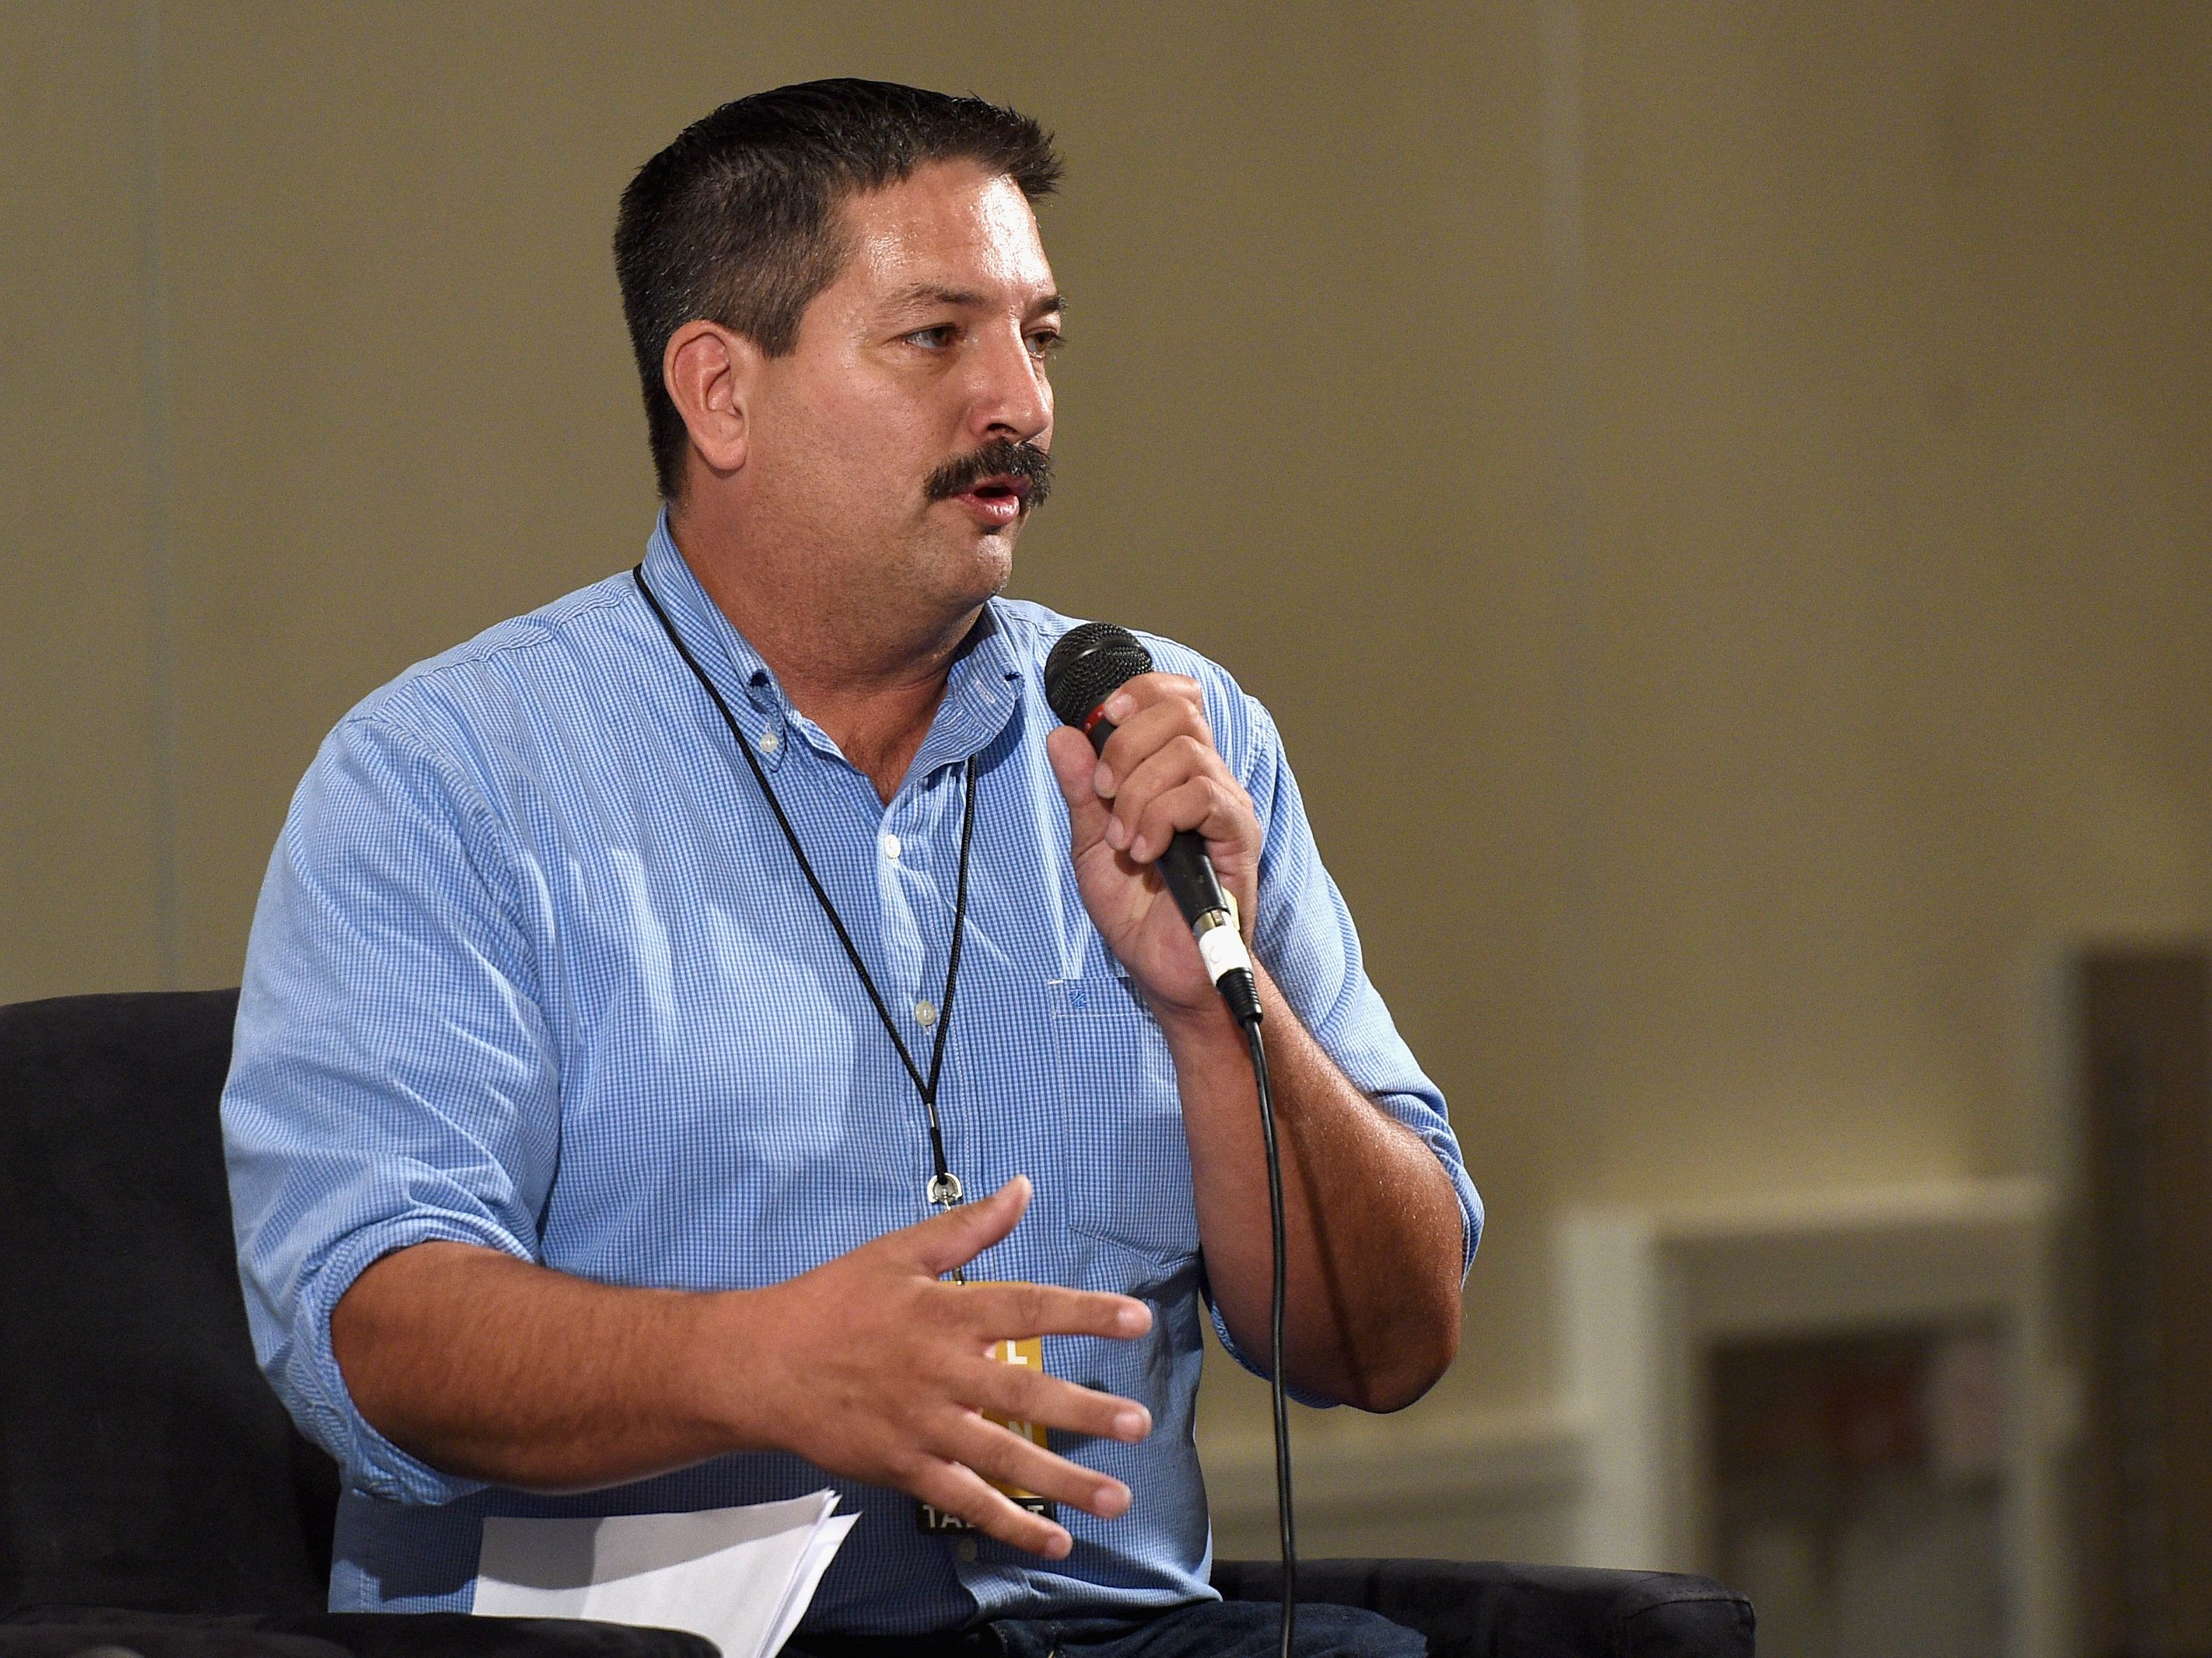 Randy Bryceat apanel on the importance of the Latino vote during Politicon on July 30 in Pasadena, California.